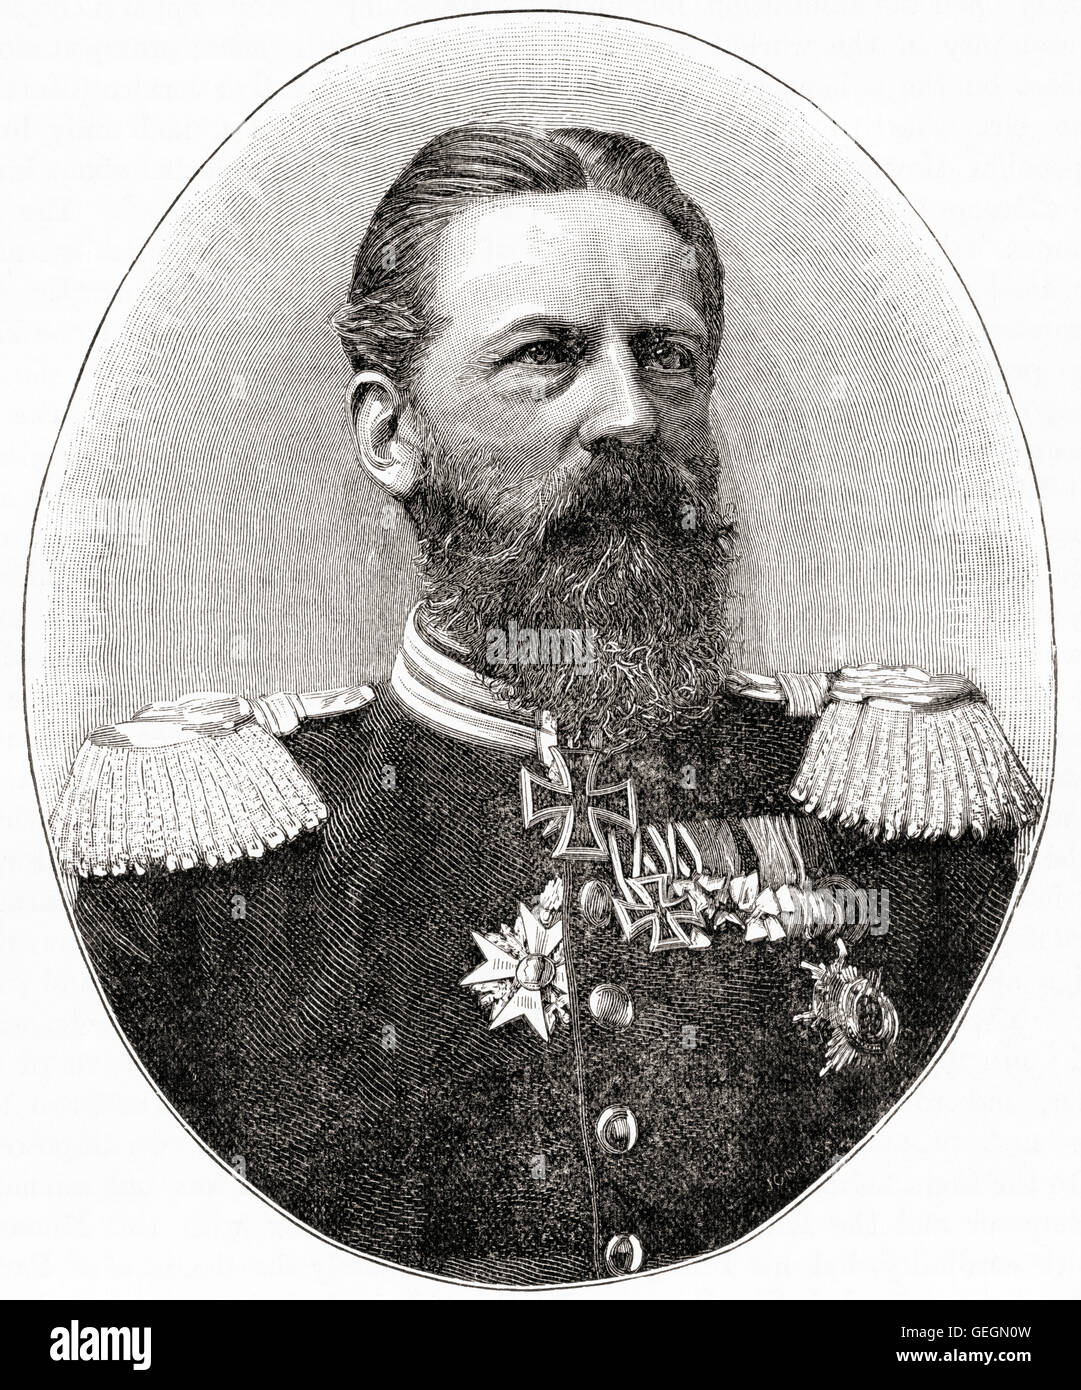 Frederick III, 1831 – 1888. German Emperor and King of Prussia for ninety-nine days in 1888, the Year of the Three - Stock Image